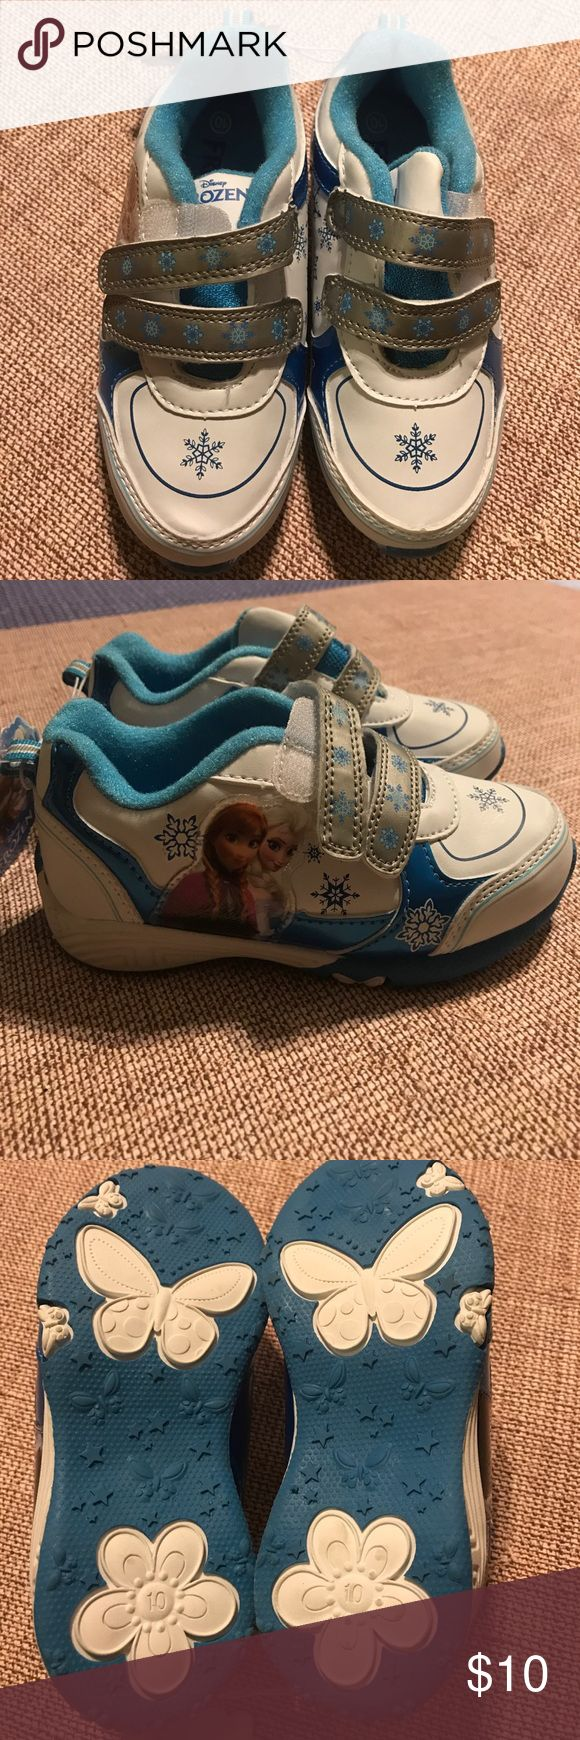 New Frozen shoes/ size 10 New Frozen Shoes/ size 10 frozen Shoes Sneakers